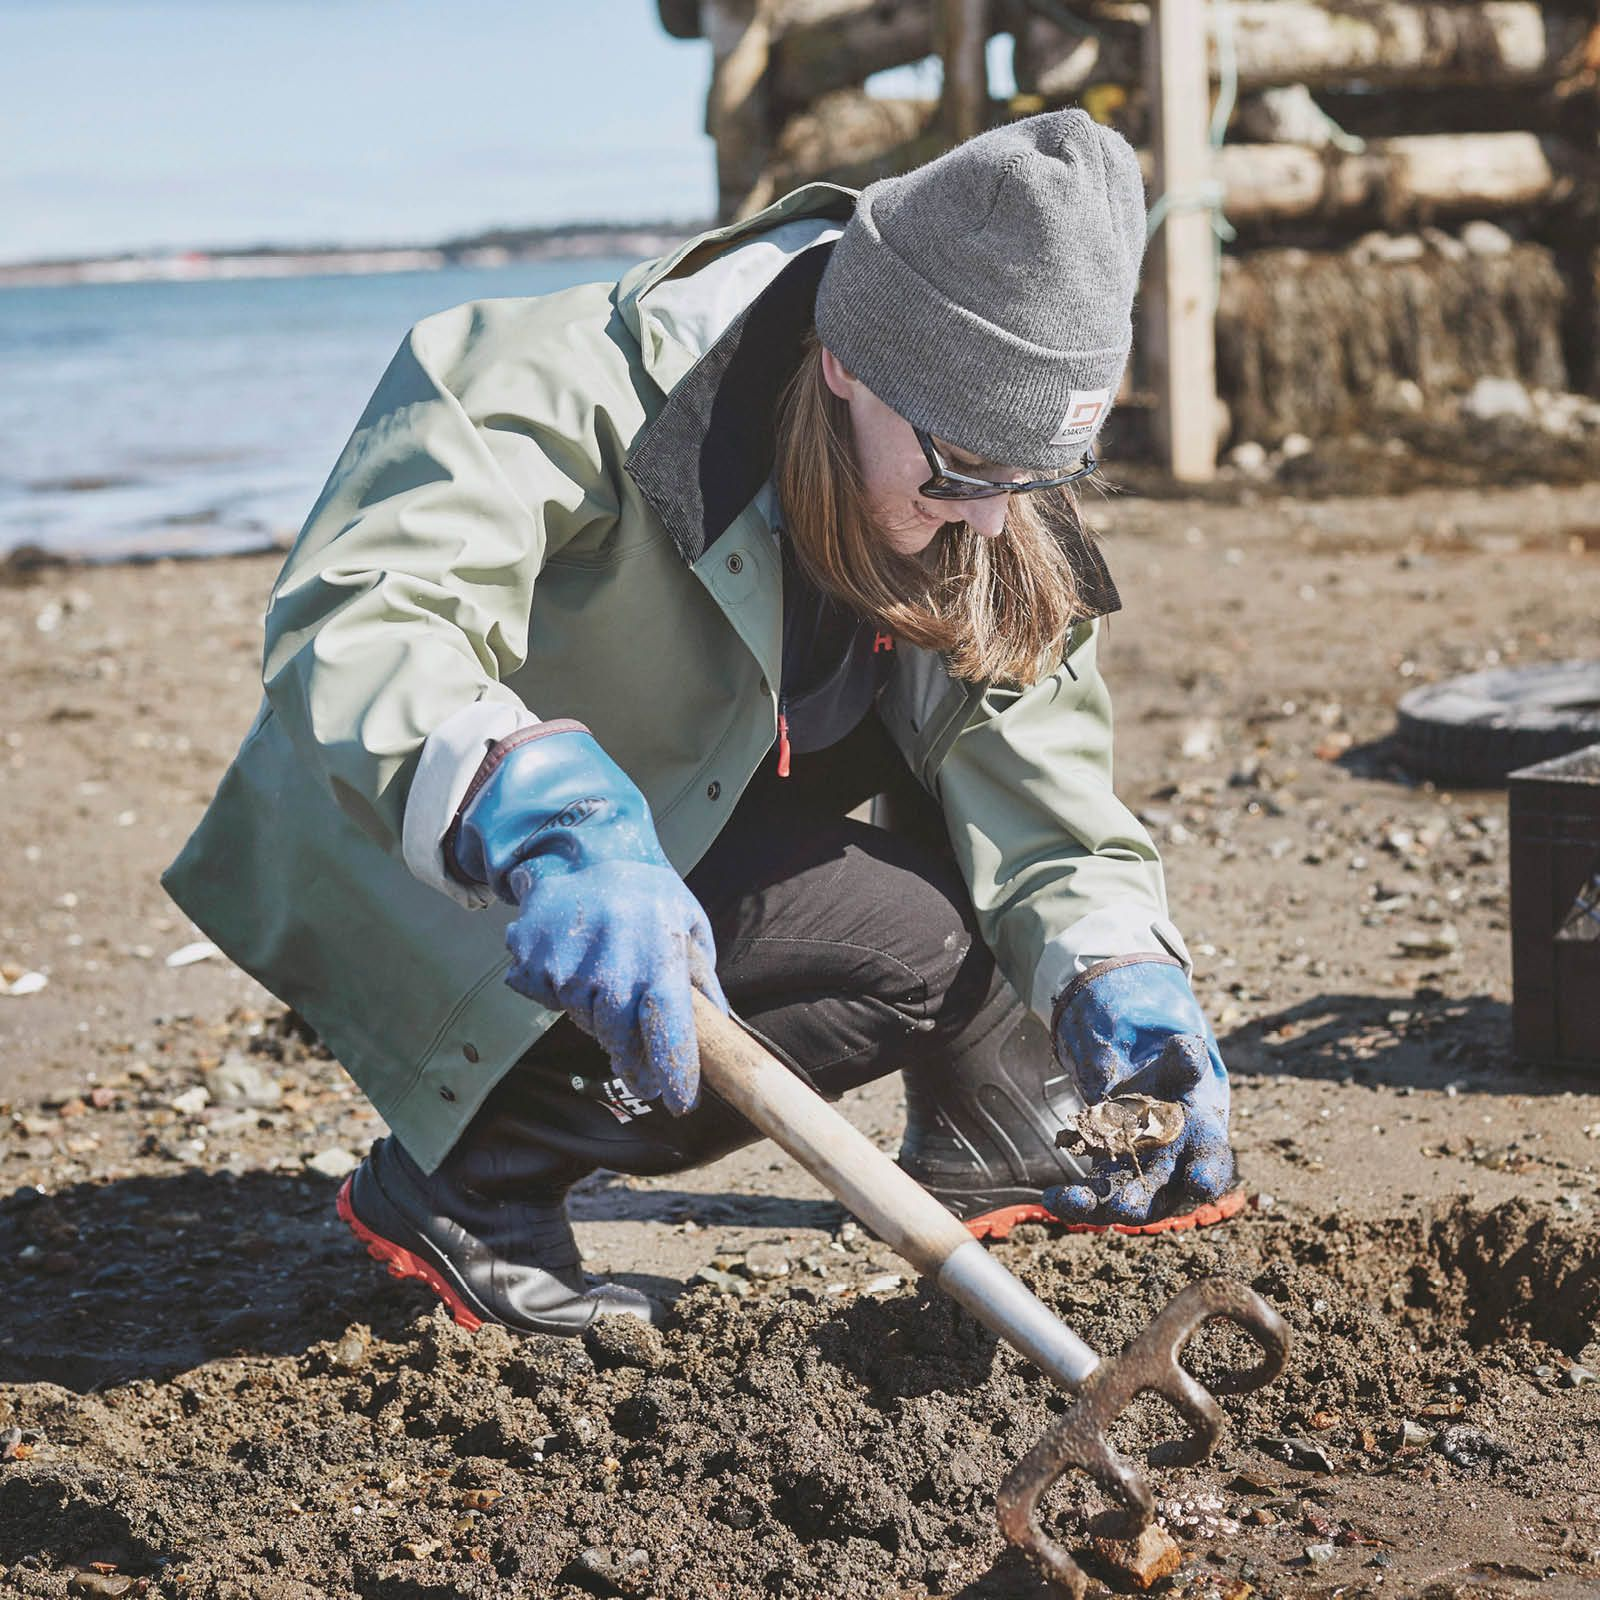 Jana Bookholt digging for clams on a beach.